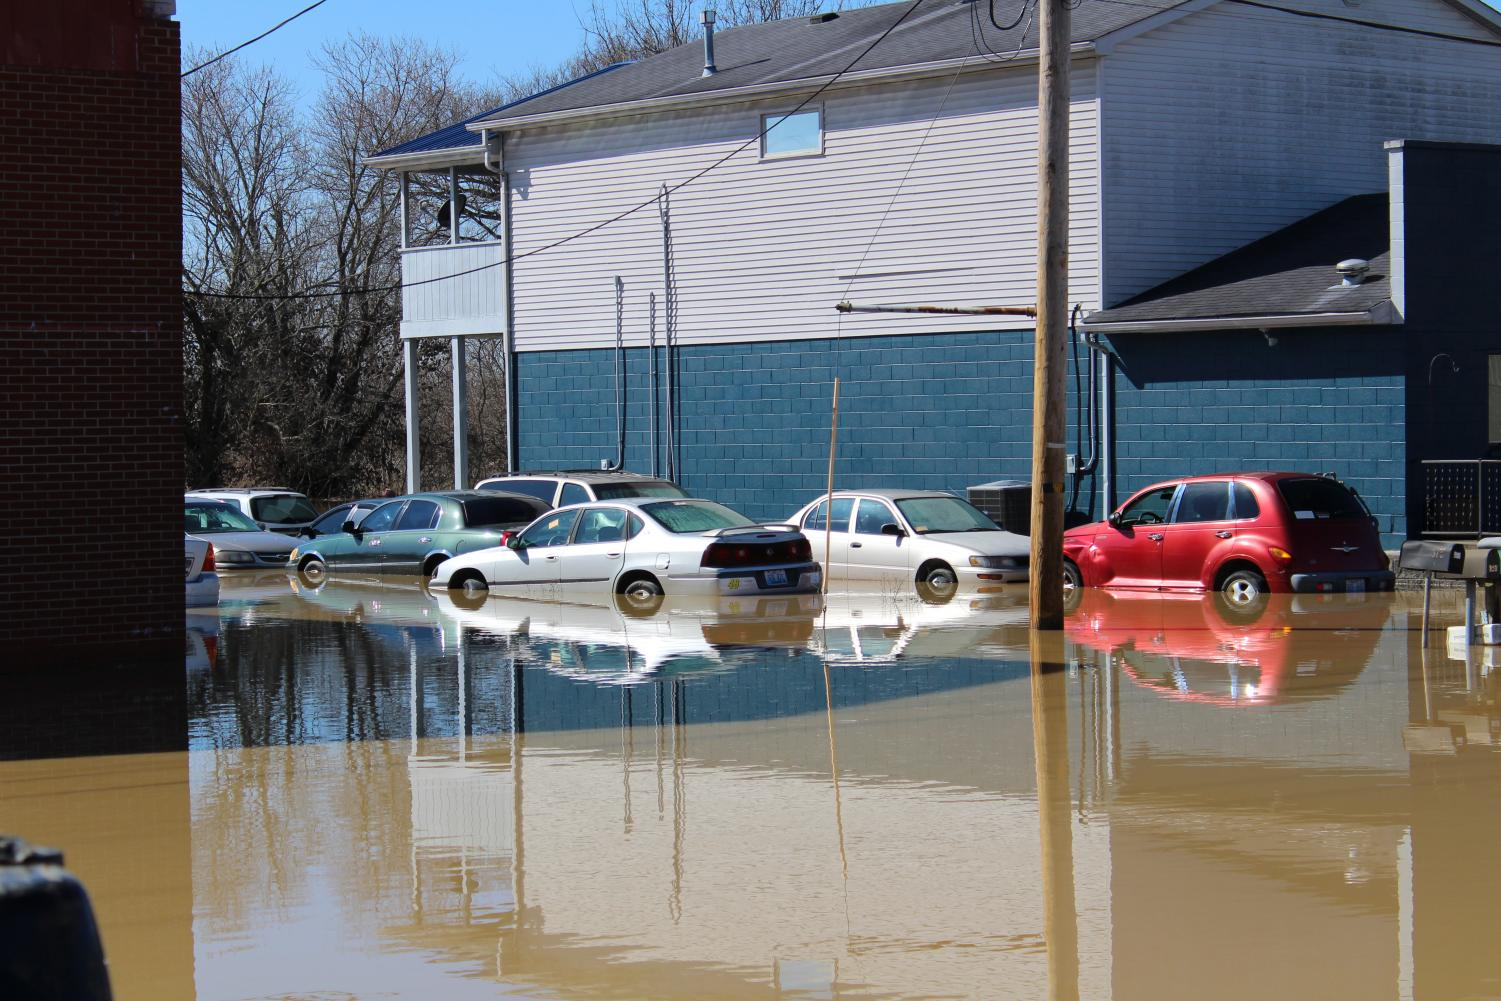 Flooding off of Main St. in Shepherdsville, KY on Monday.